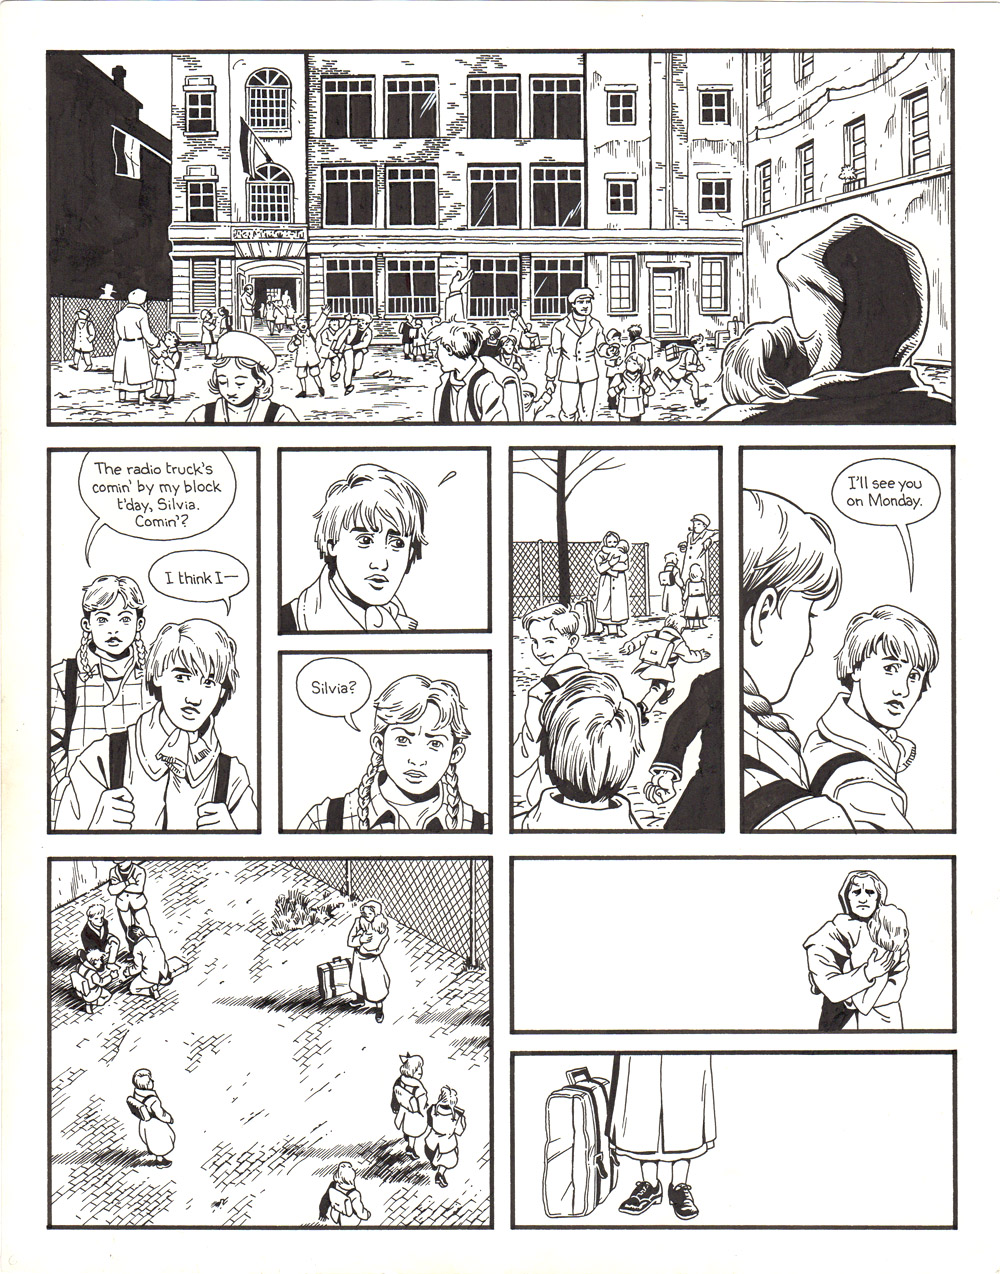 Berlin: Book 1 - Page 088